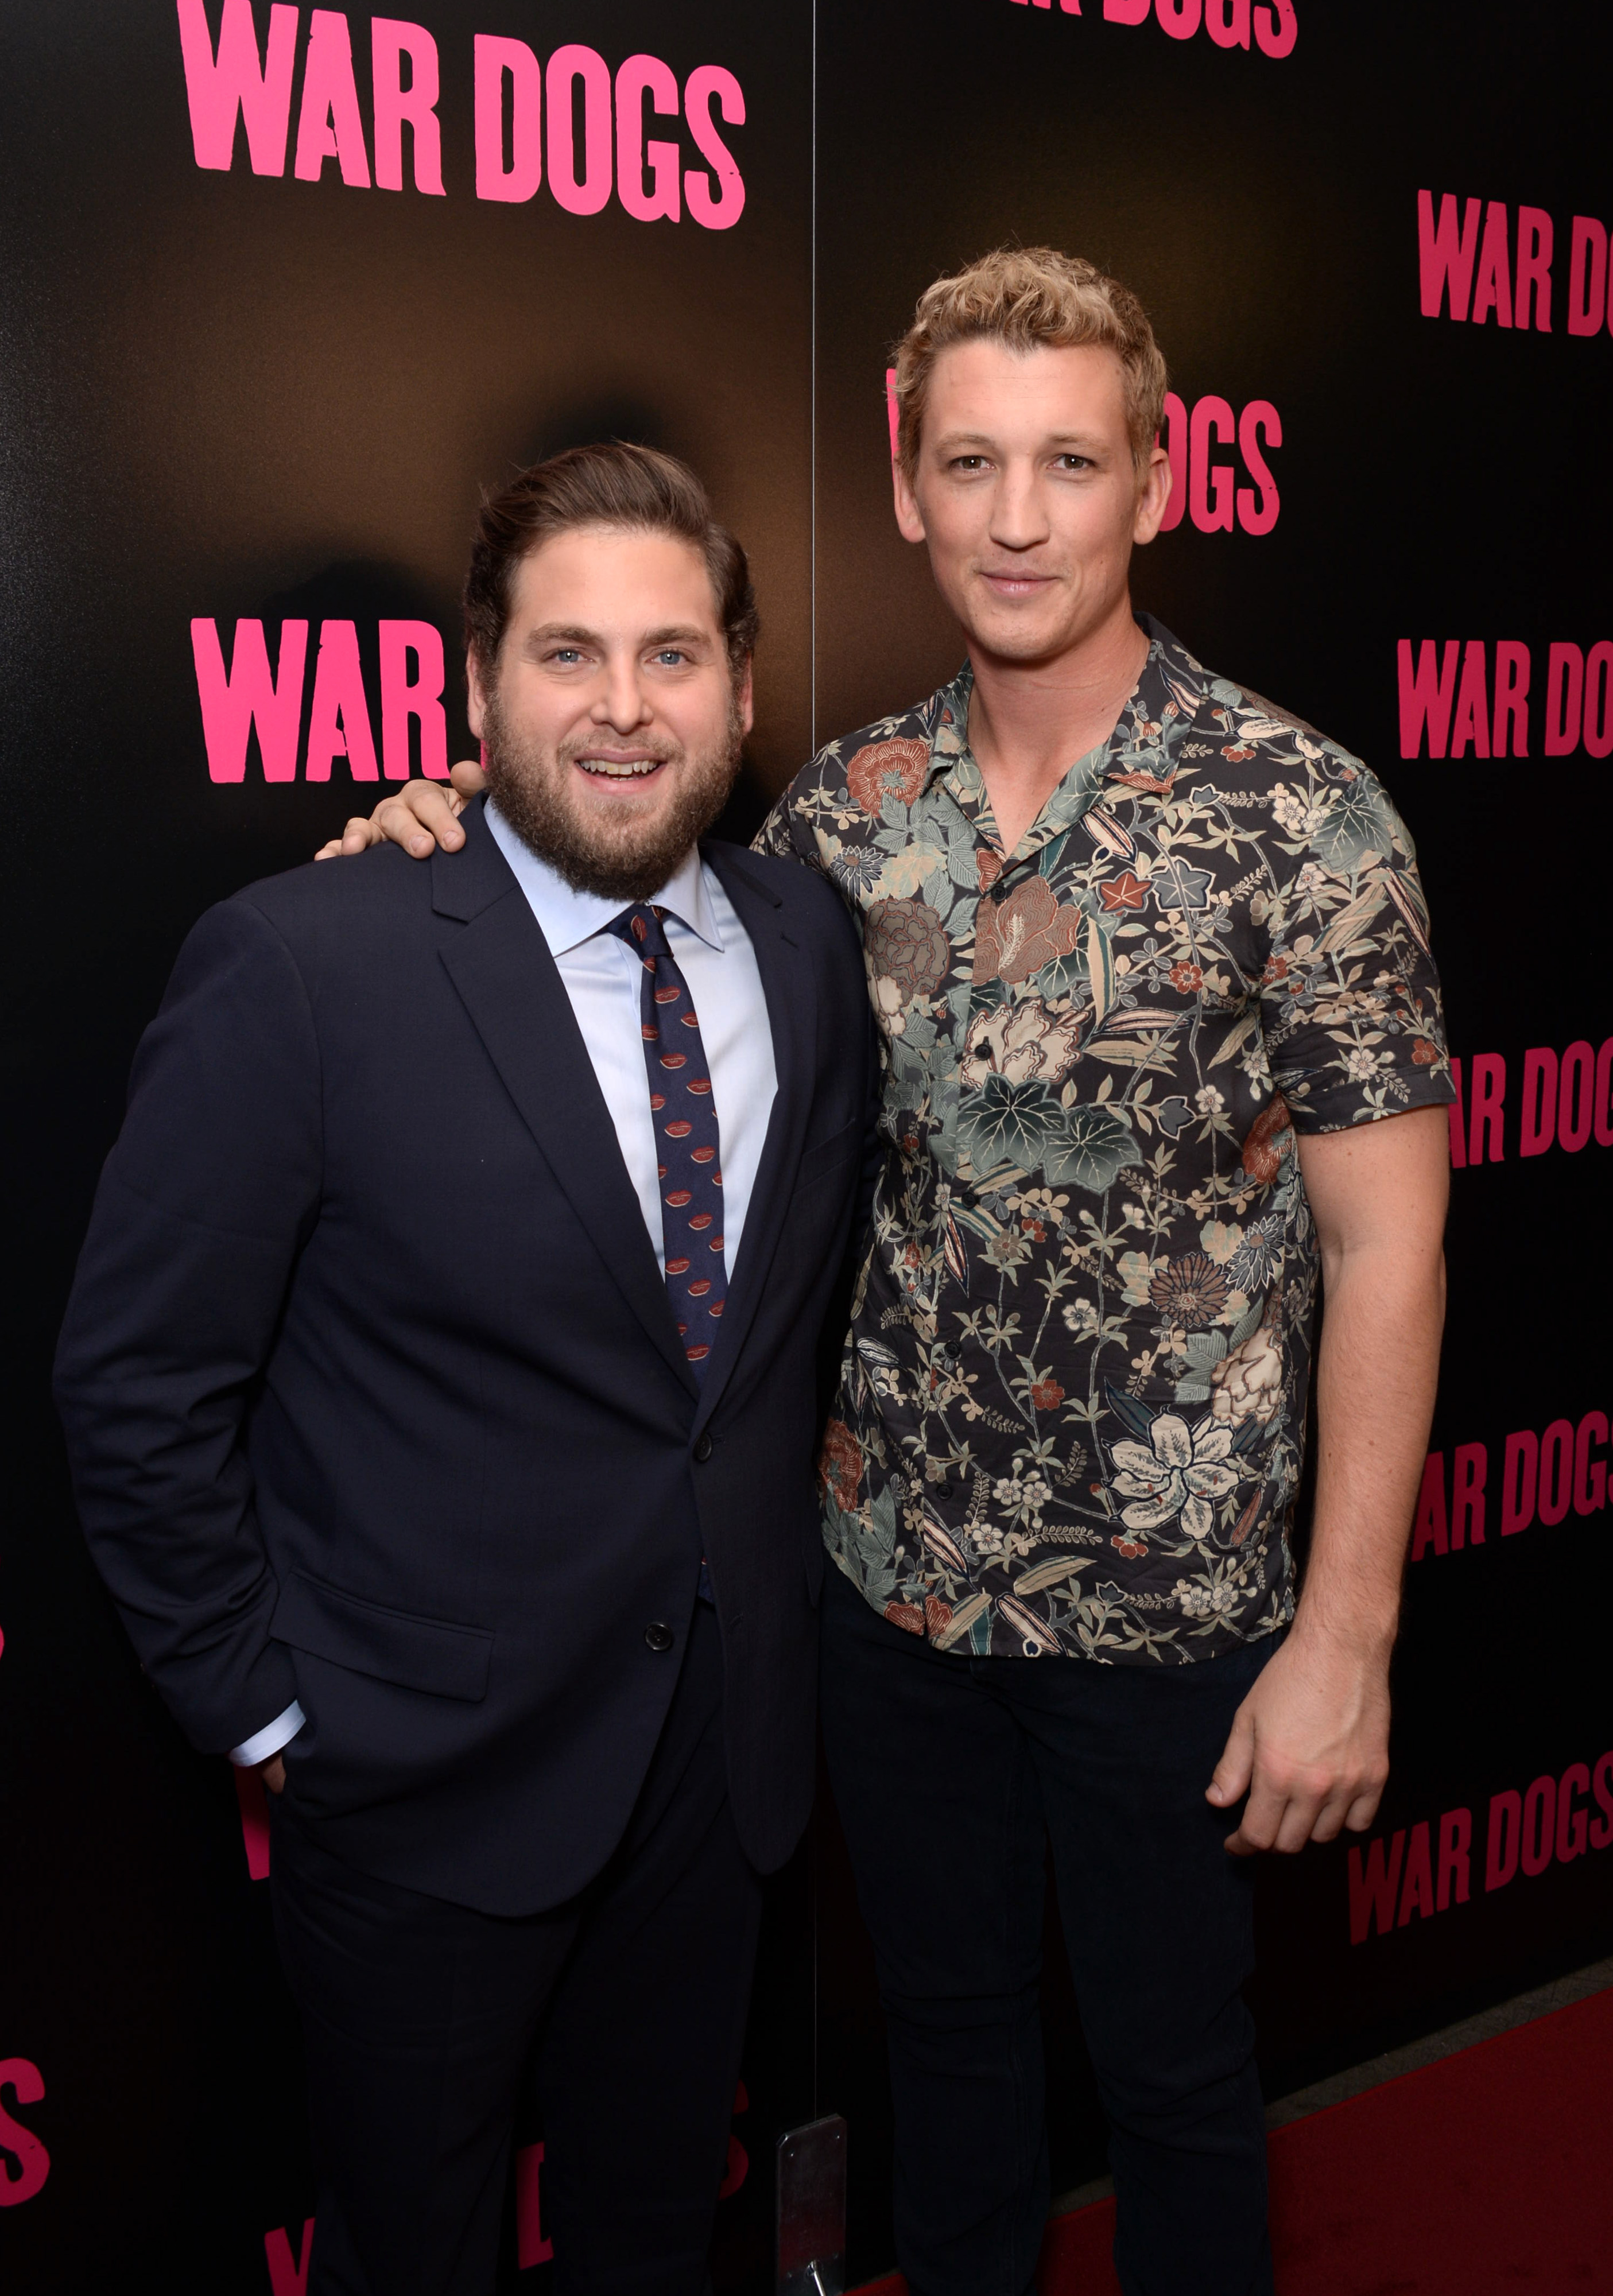 Jonah Hill and Miles Teller attend the  War Dogs  New York premiere on August 3, 2016.